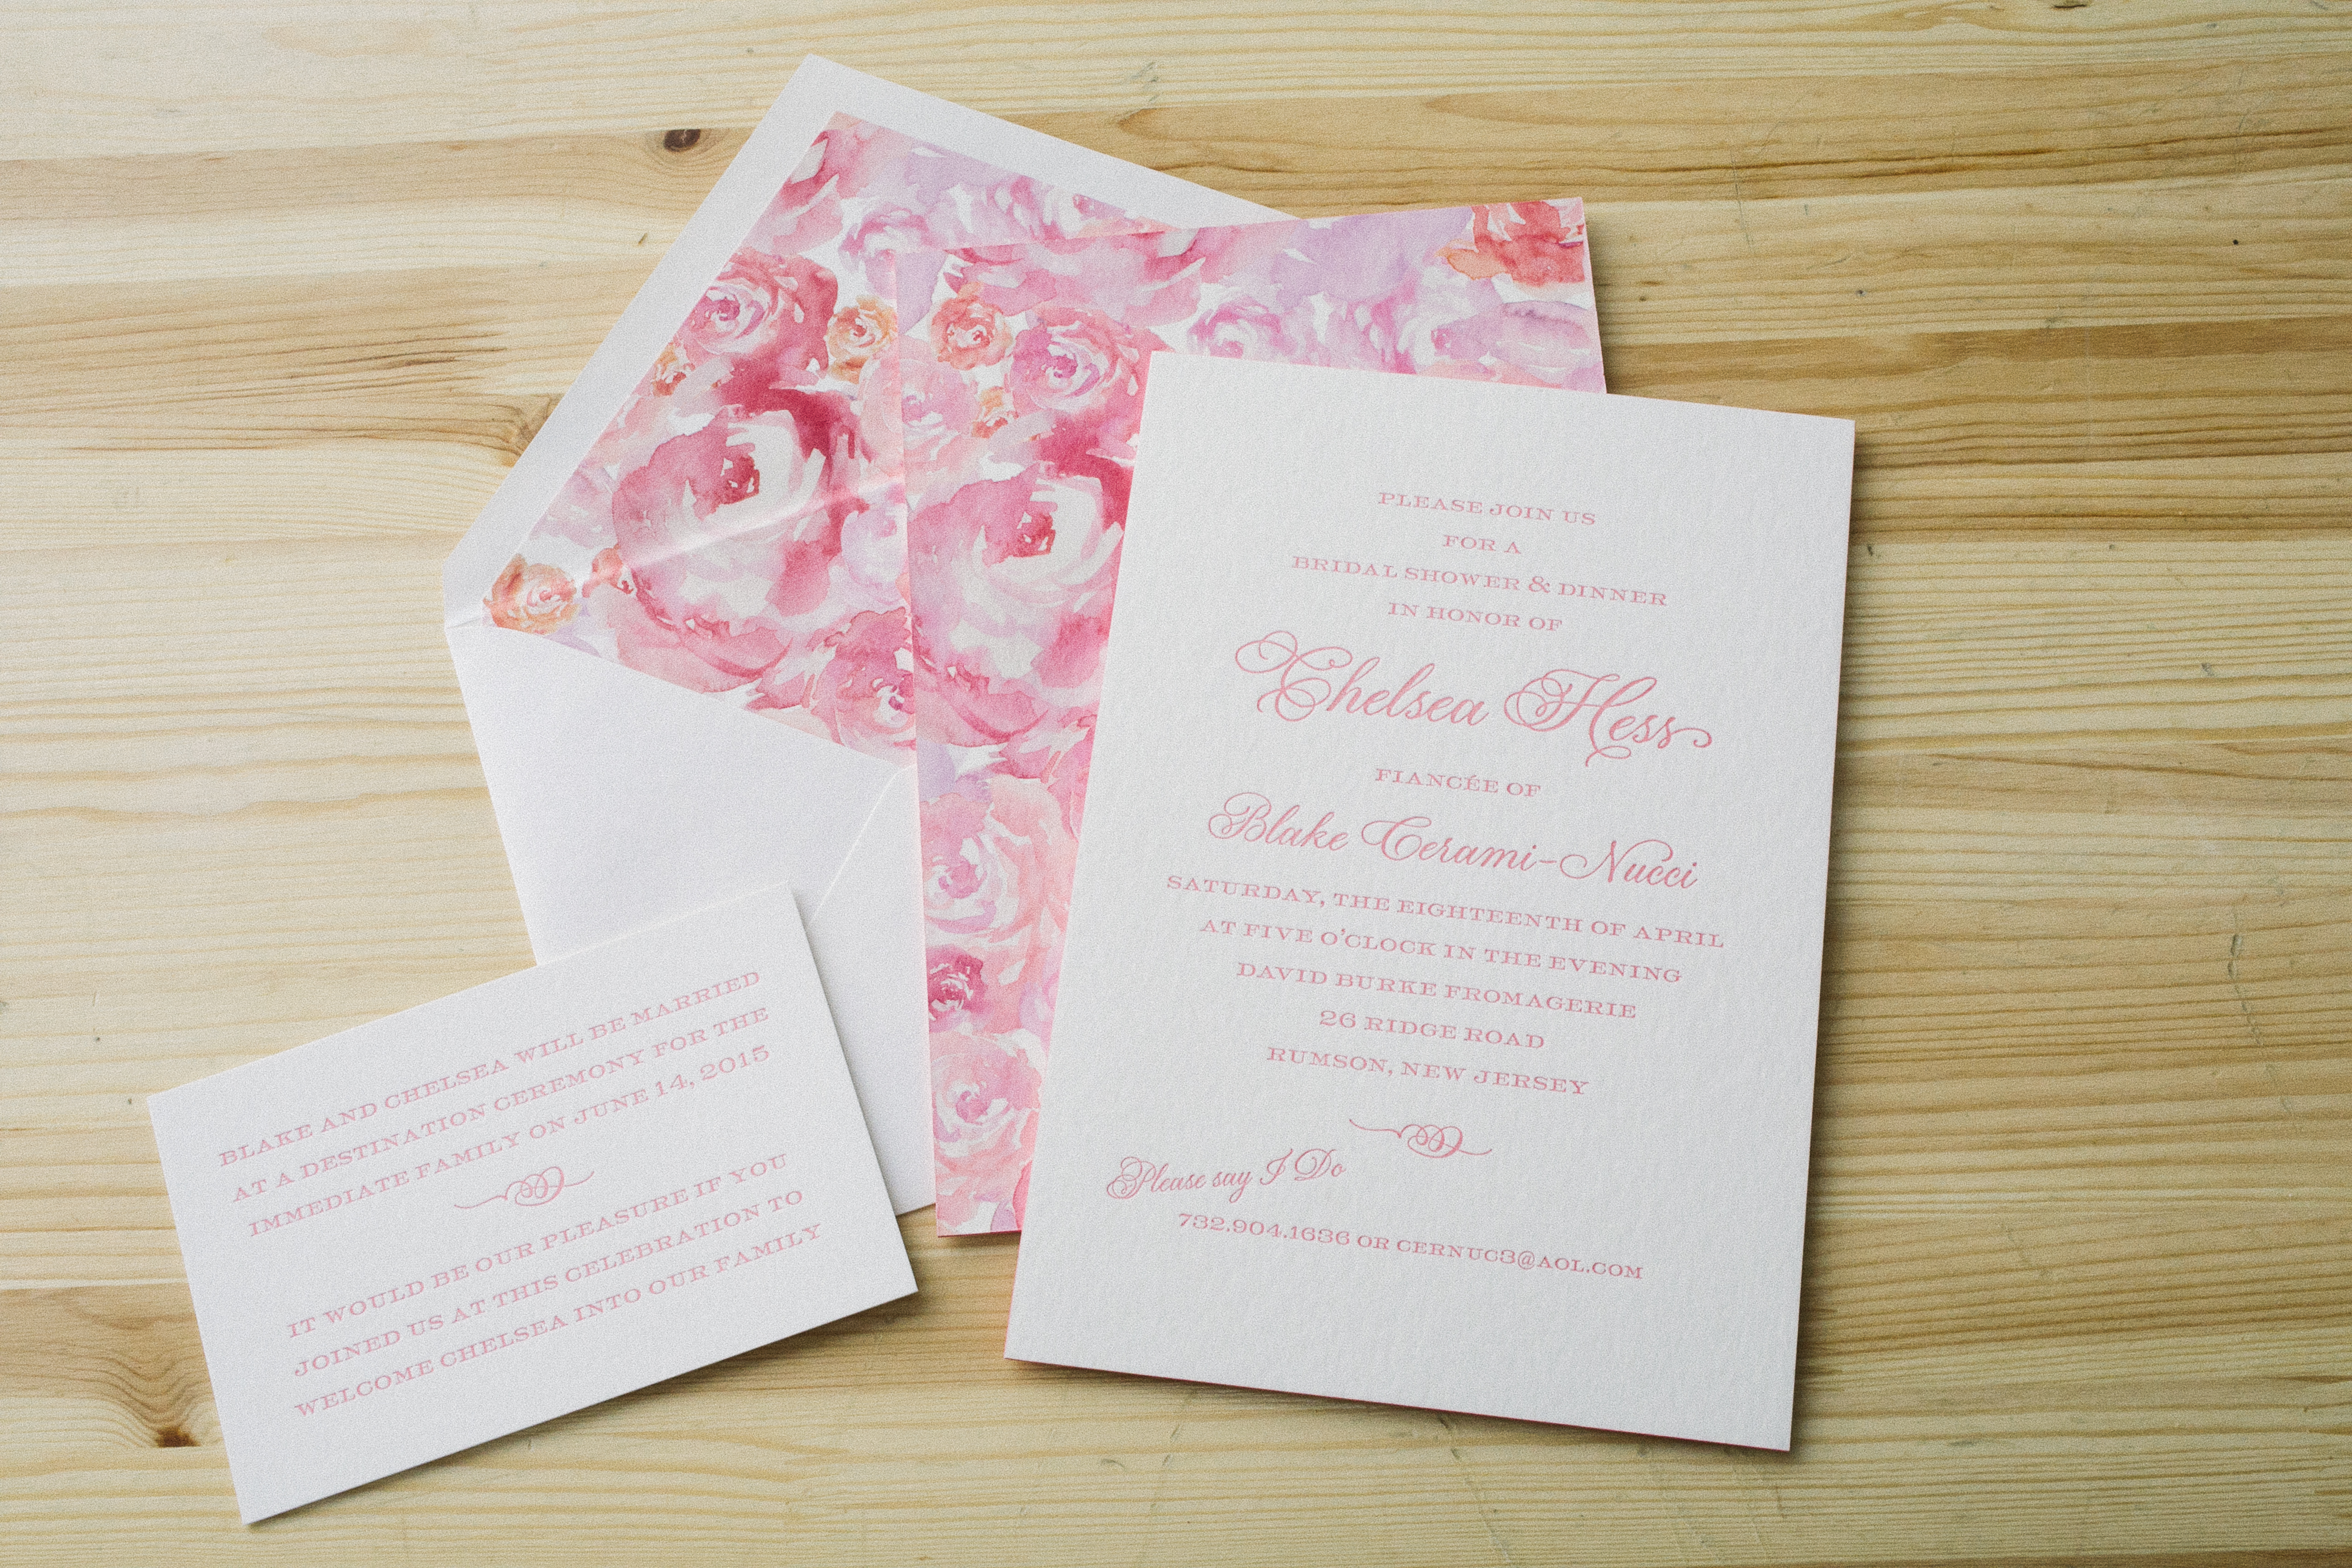 Romantic floral watercolor bridal shower invitations from Smock